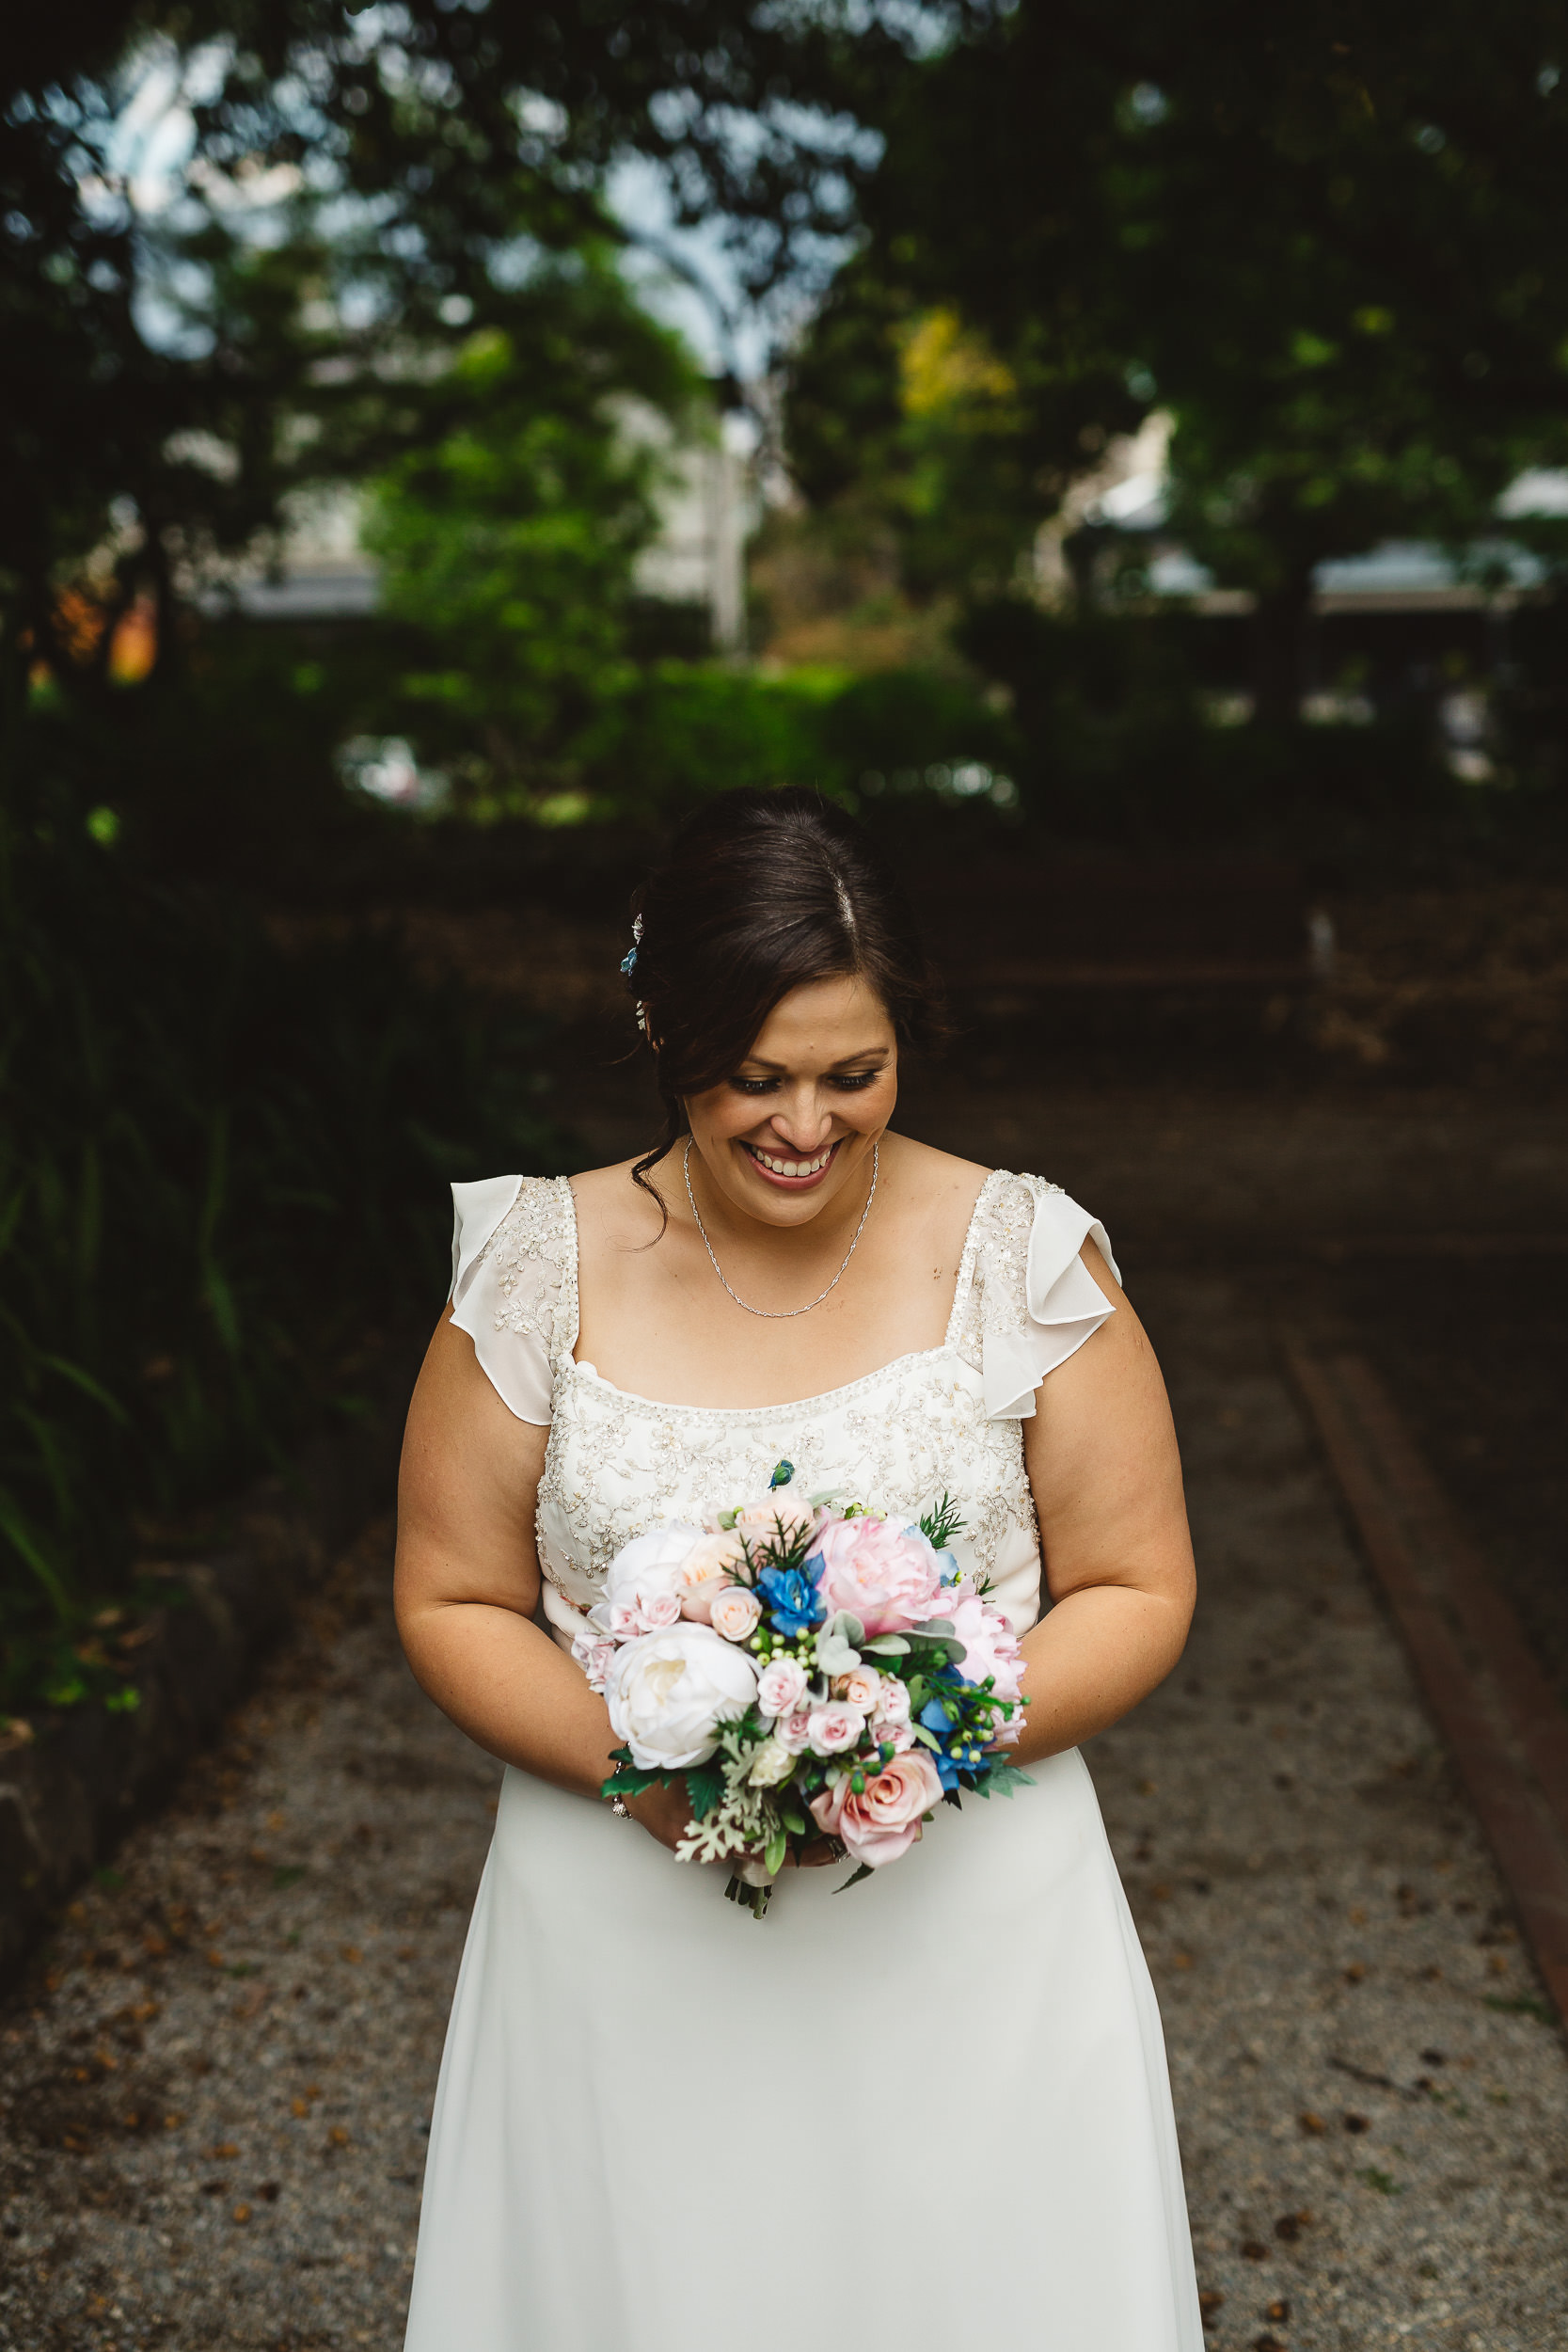 Melbourne-Wedding-Photographer-1087.jpg